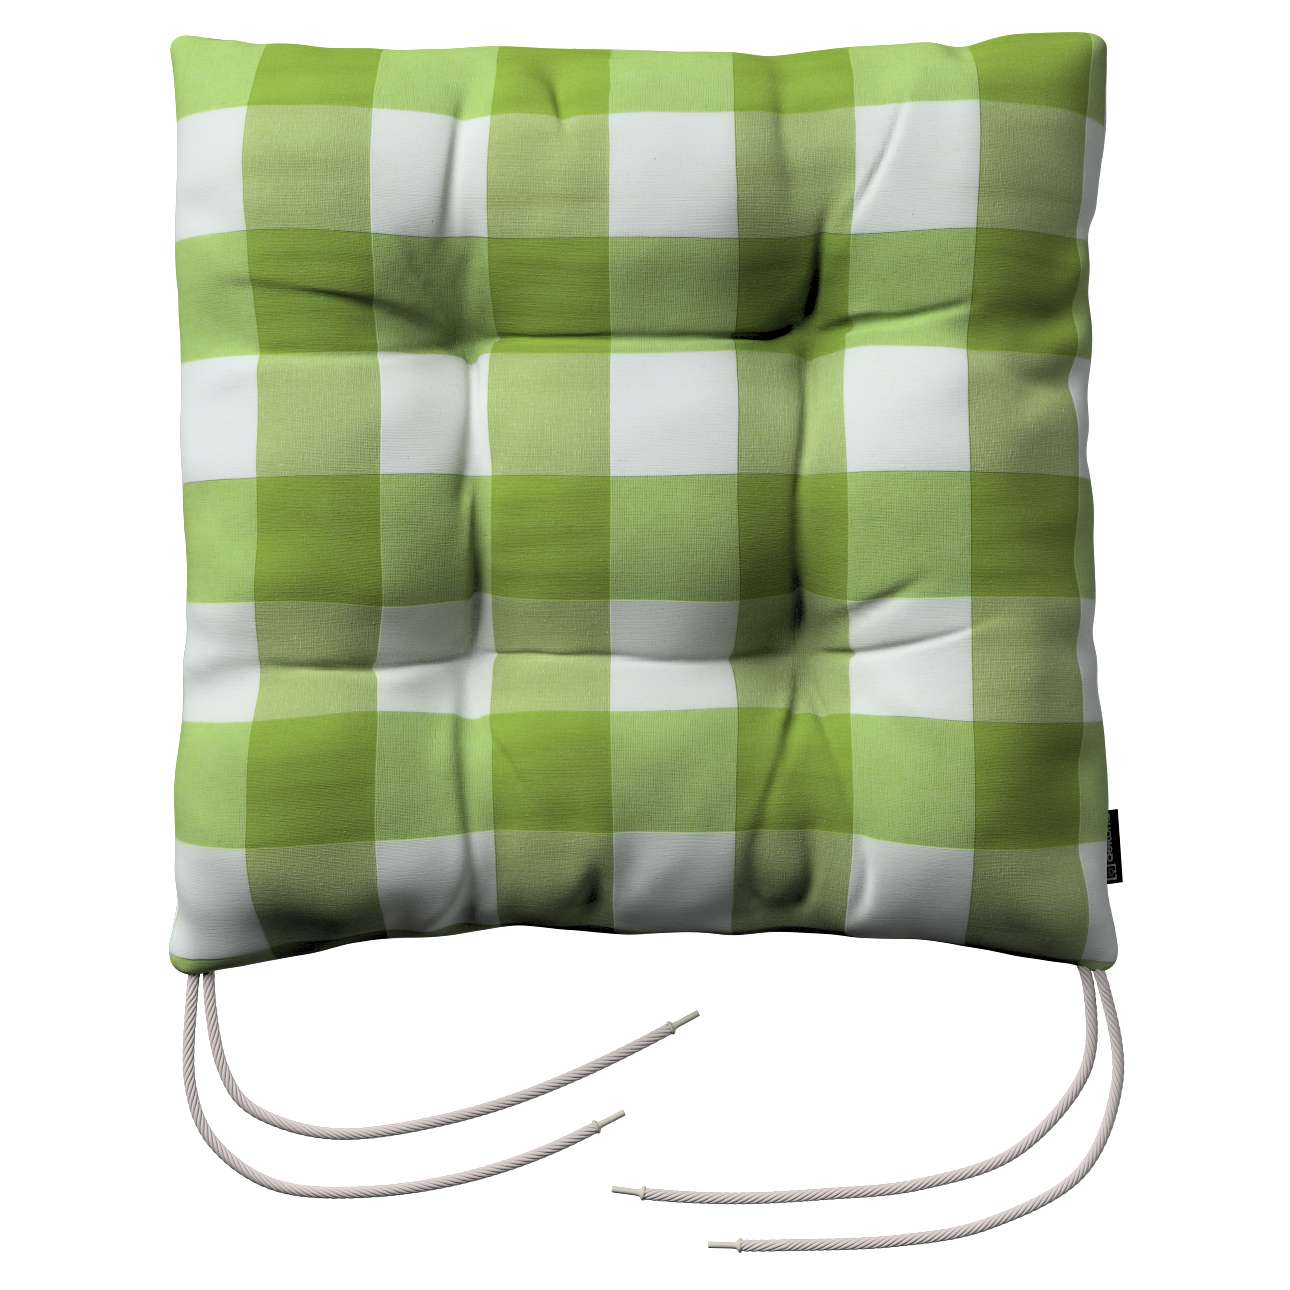 Jack seat pad with ties in collection Quadro, fabric: 136-36